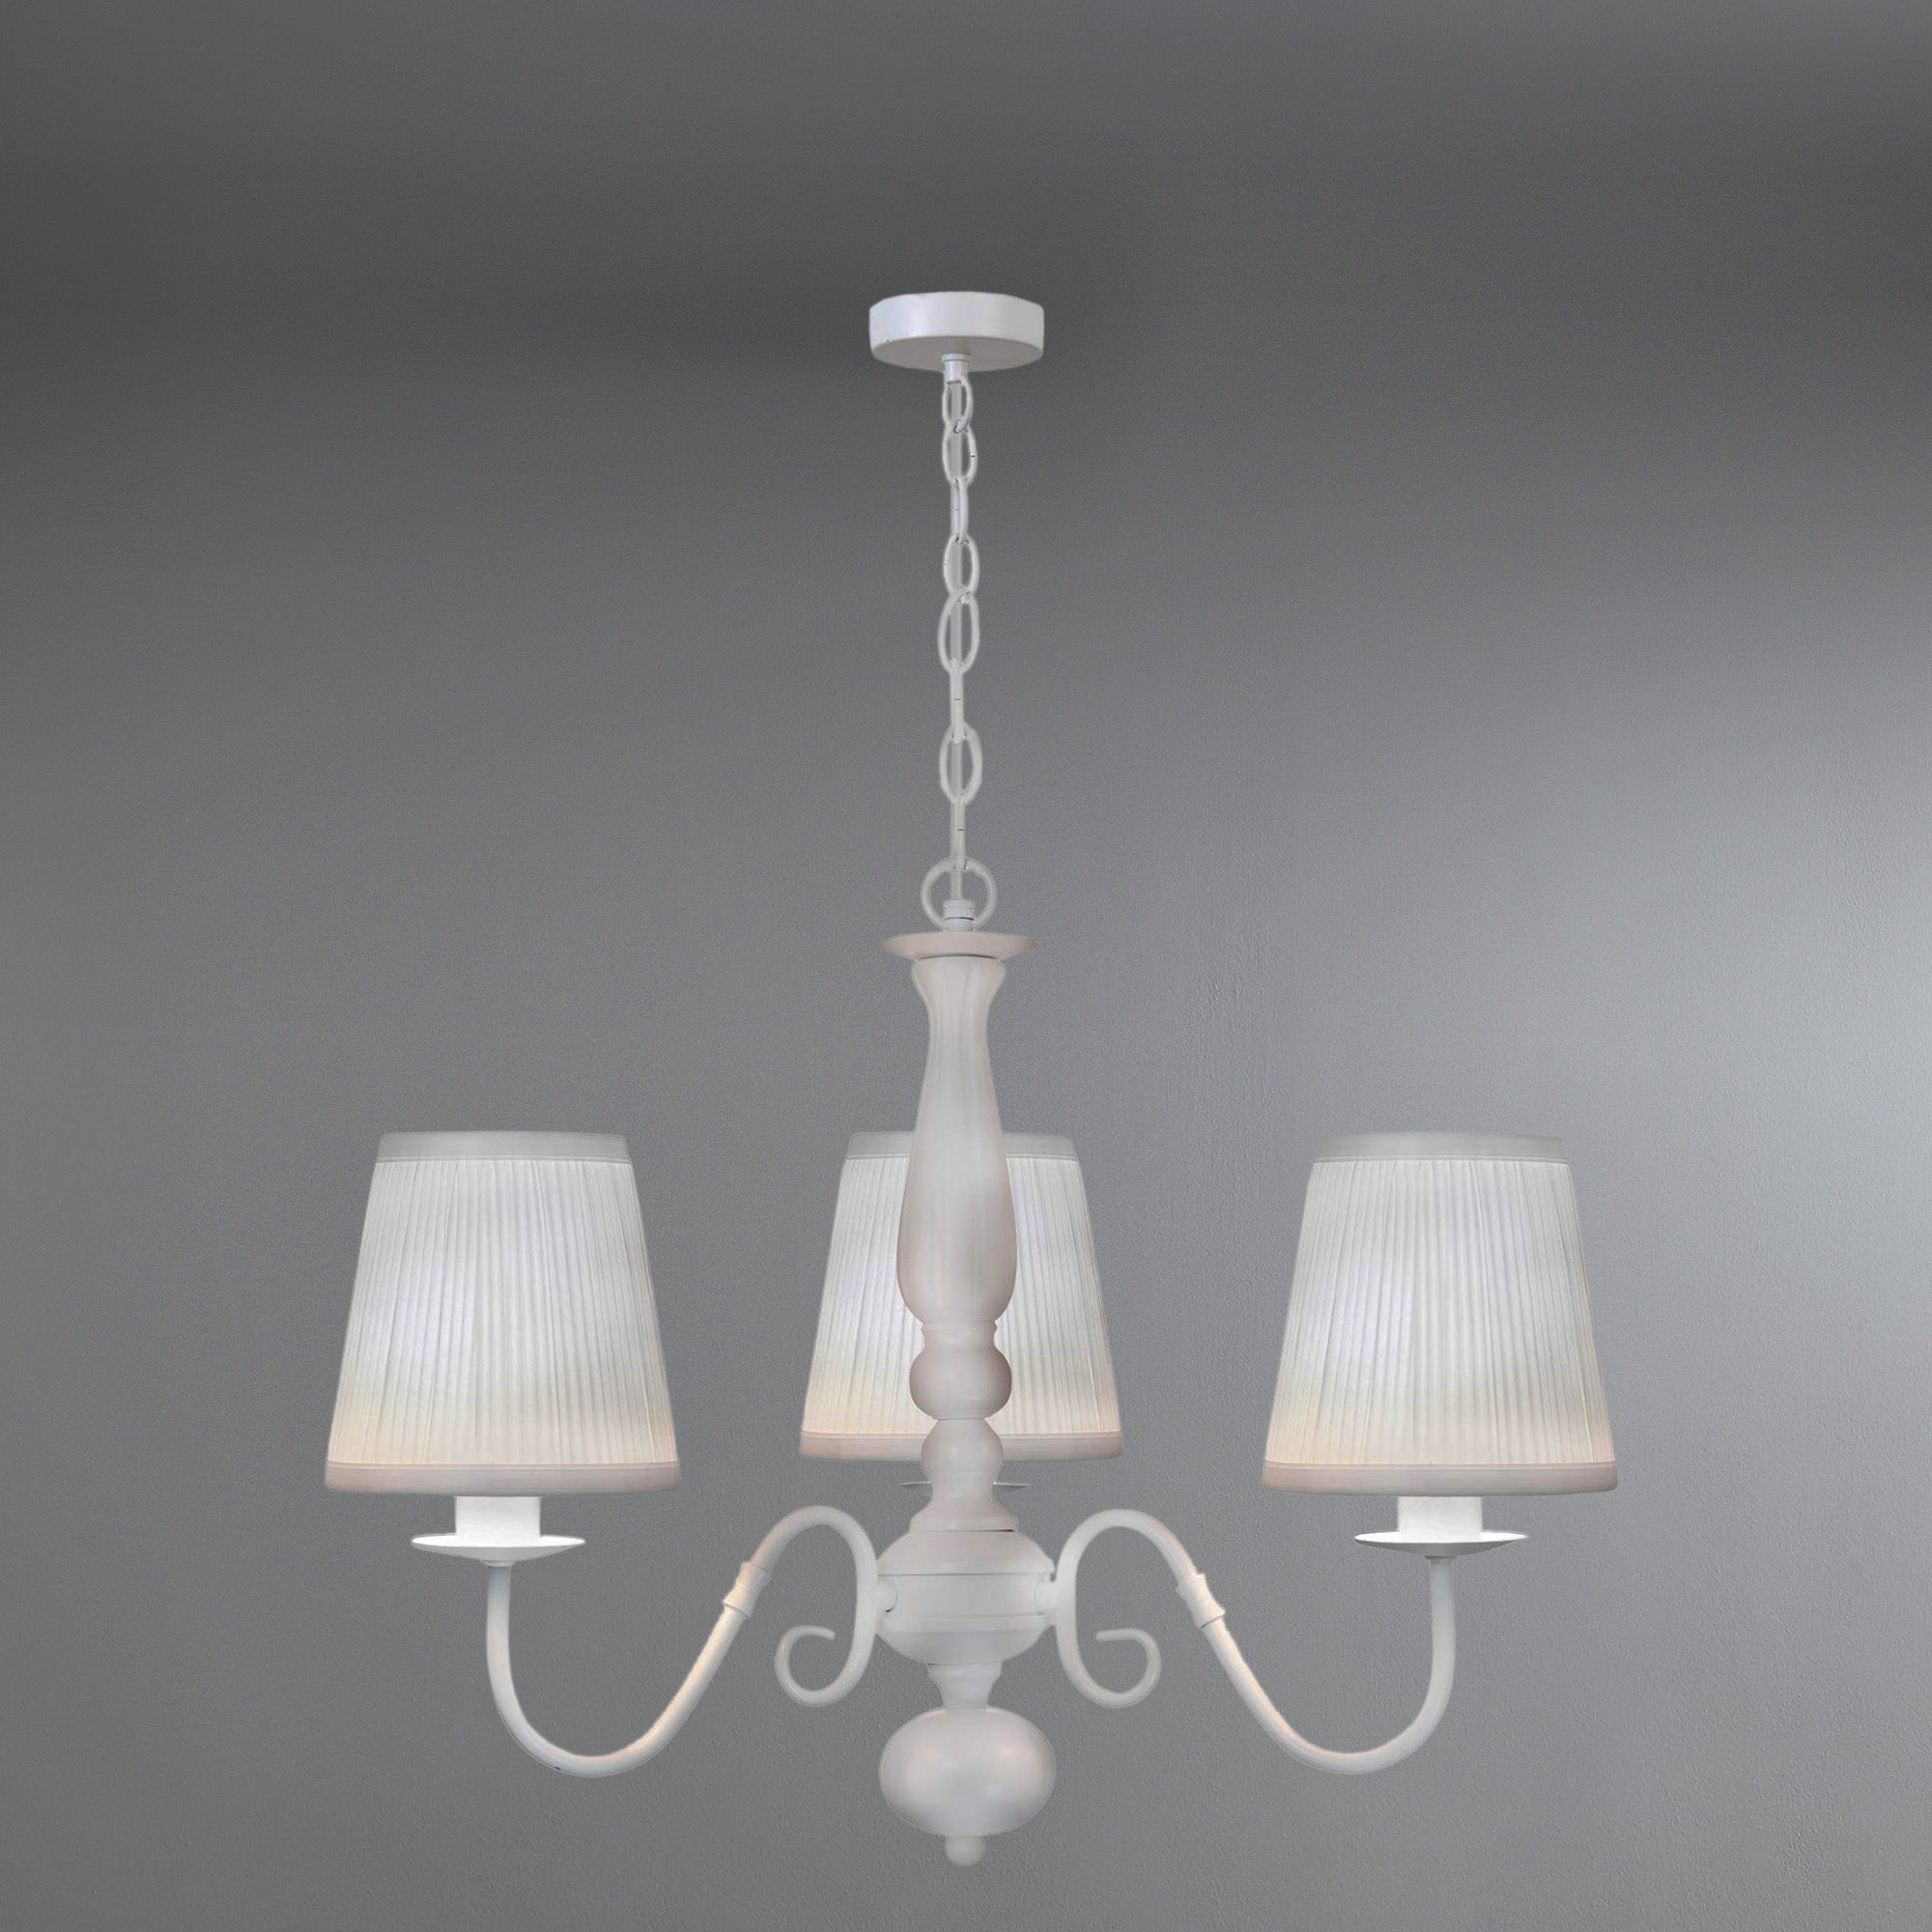 Loretta Ceiling Fitted Triple Light